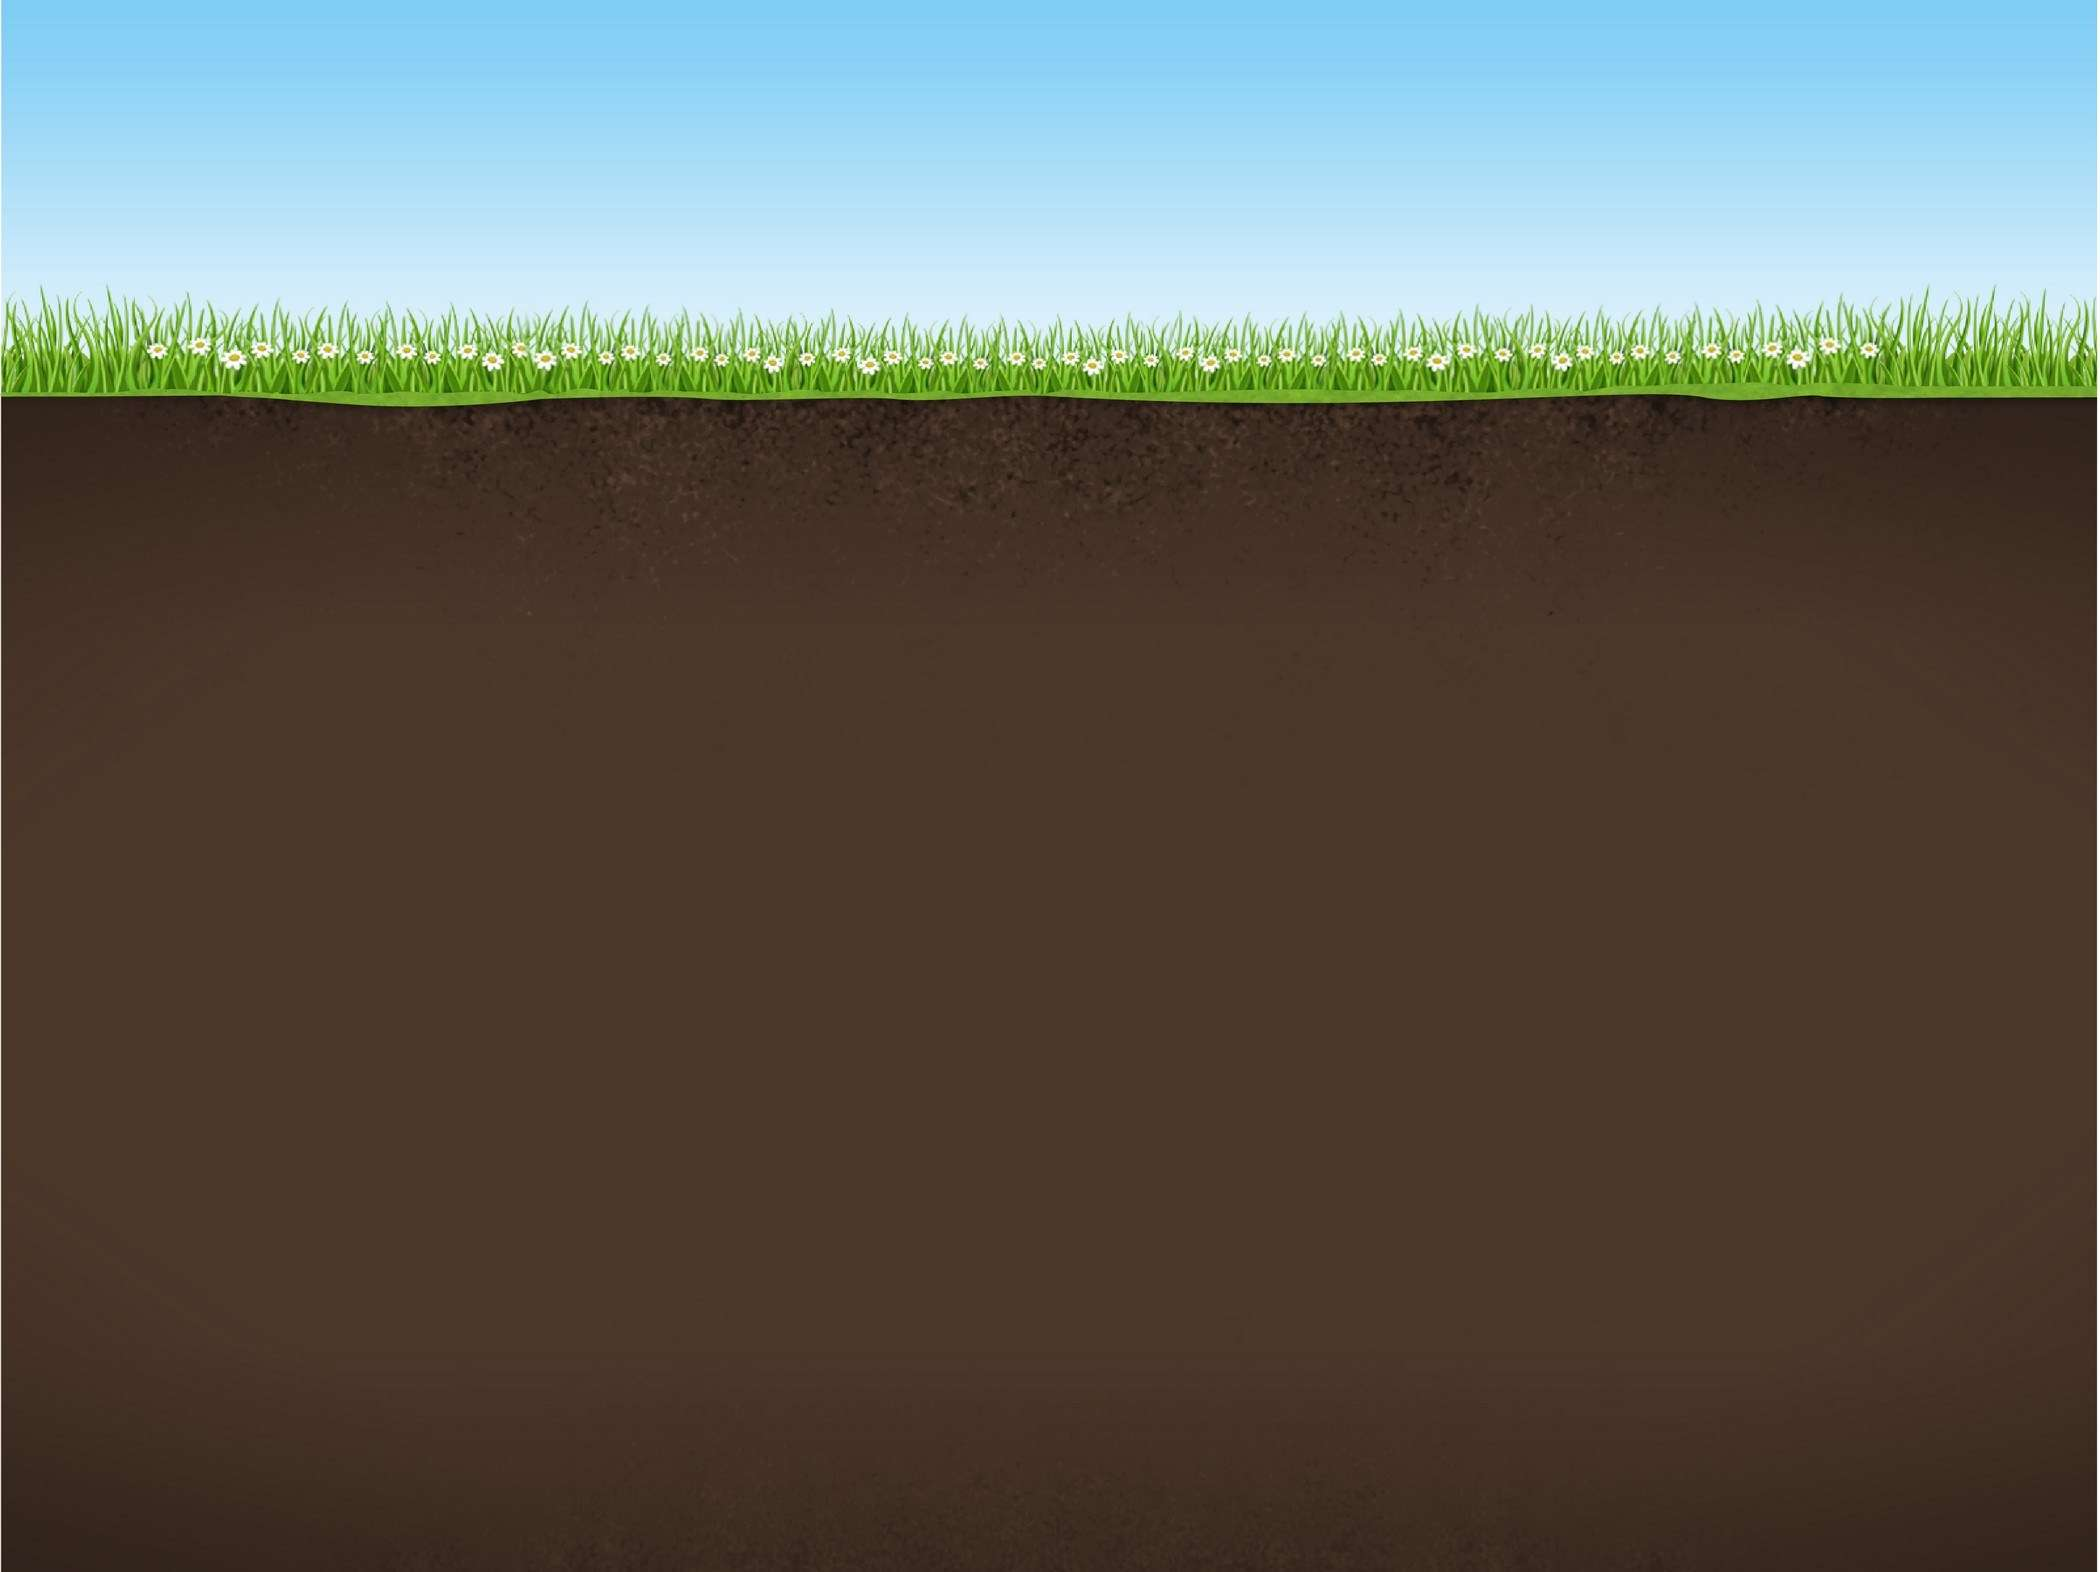 Nature_Background_with_Sky_Grass_and_Earth